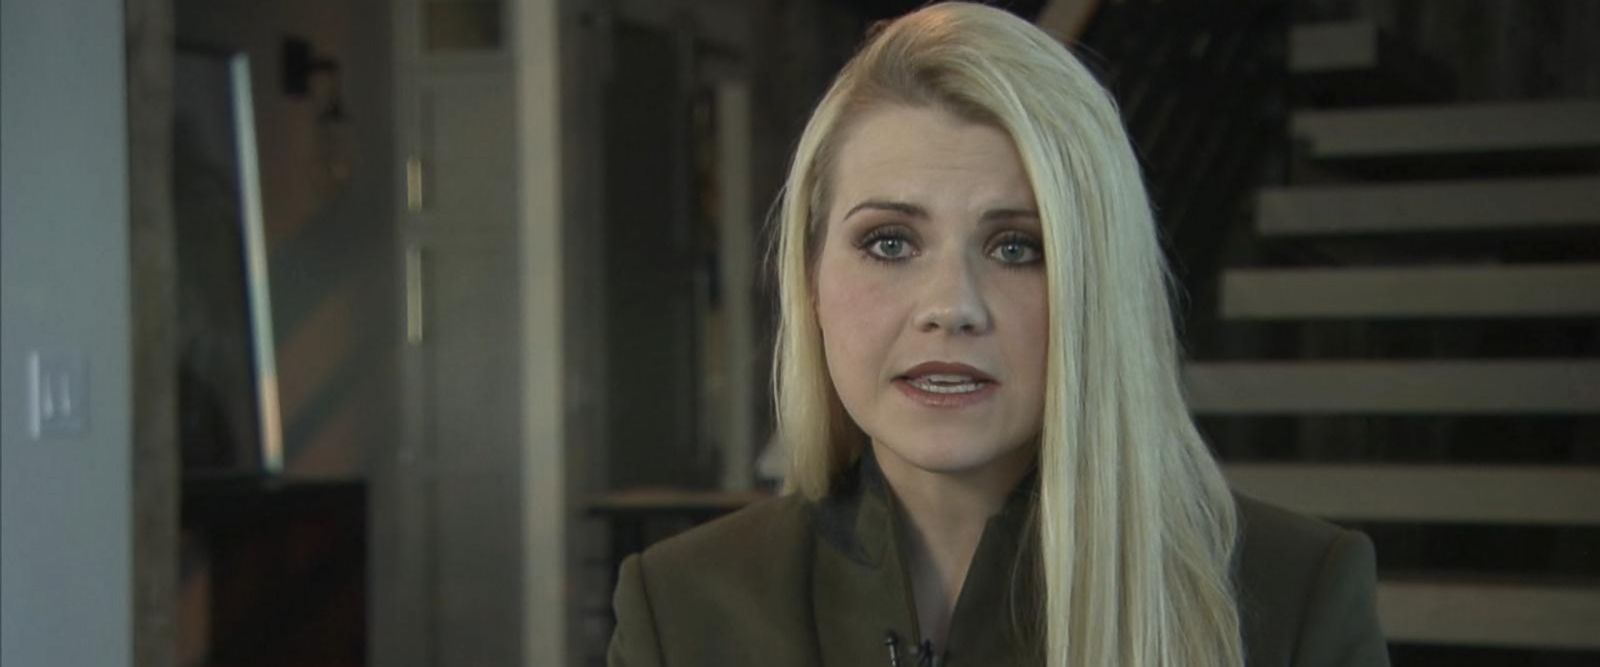 """VIDEO: """"The human spirit is incredibly resilient,"""" Elizabeth Smart said."""